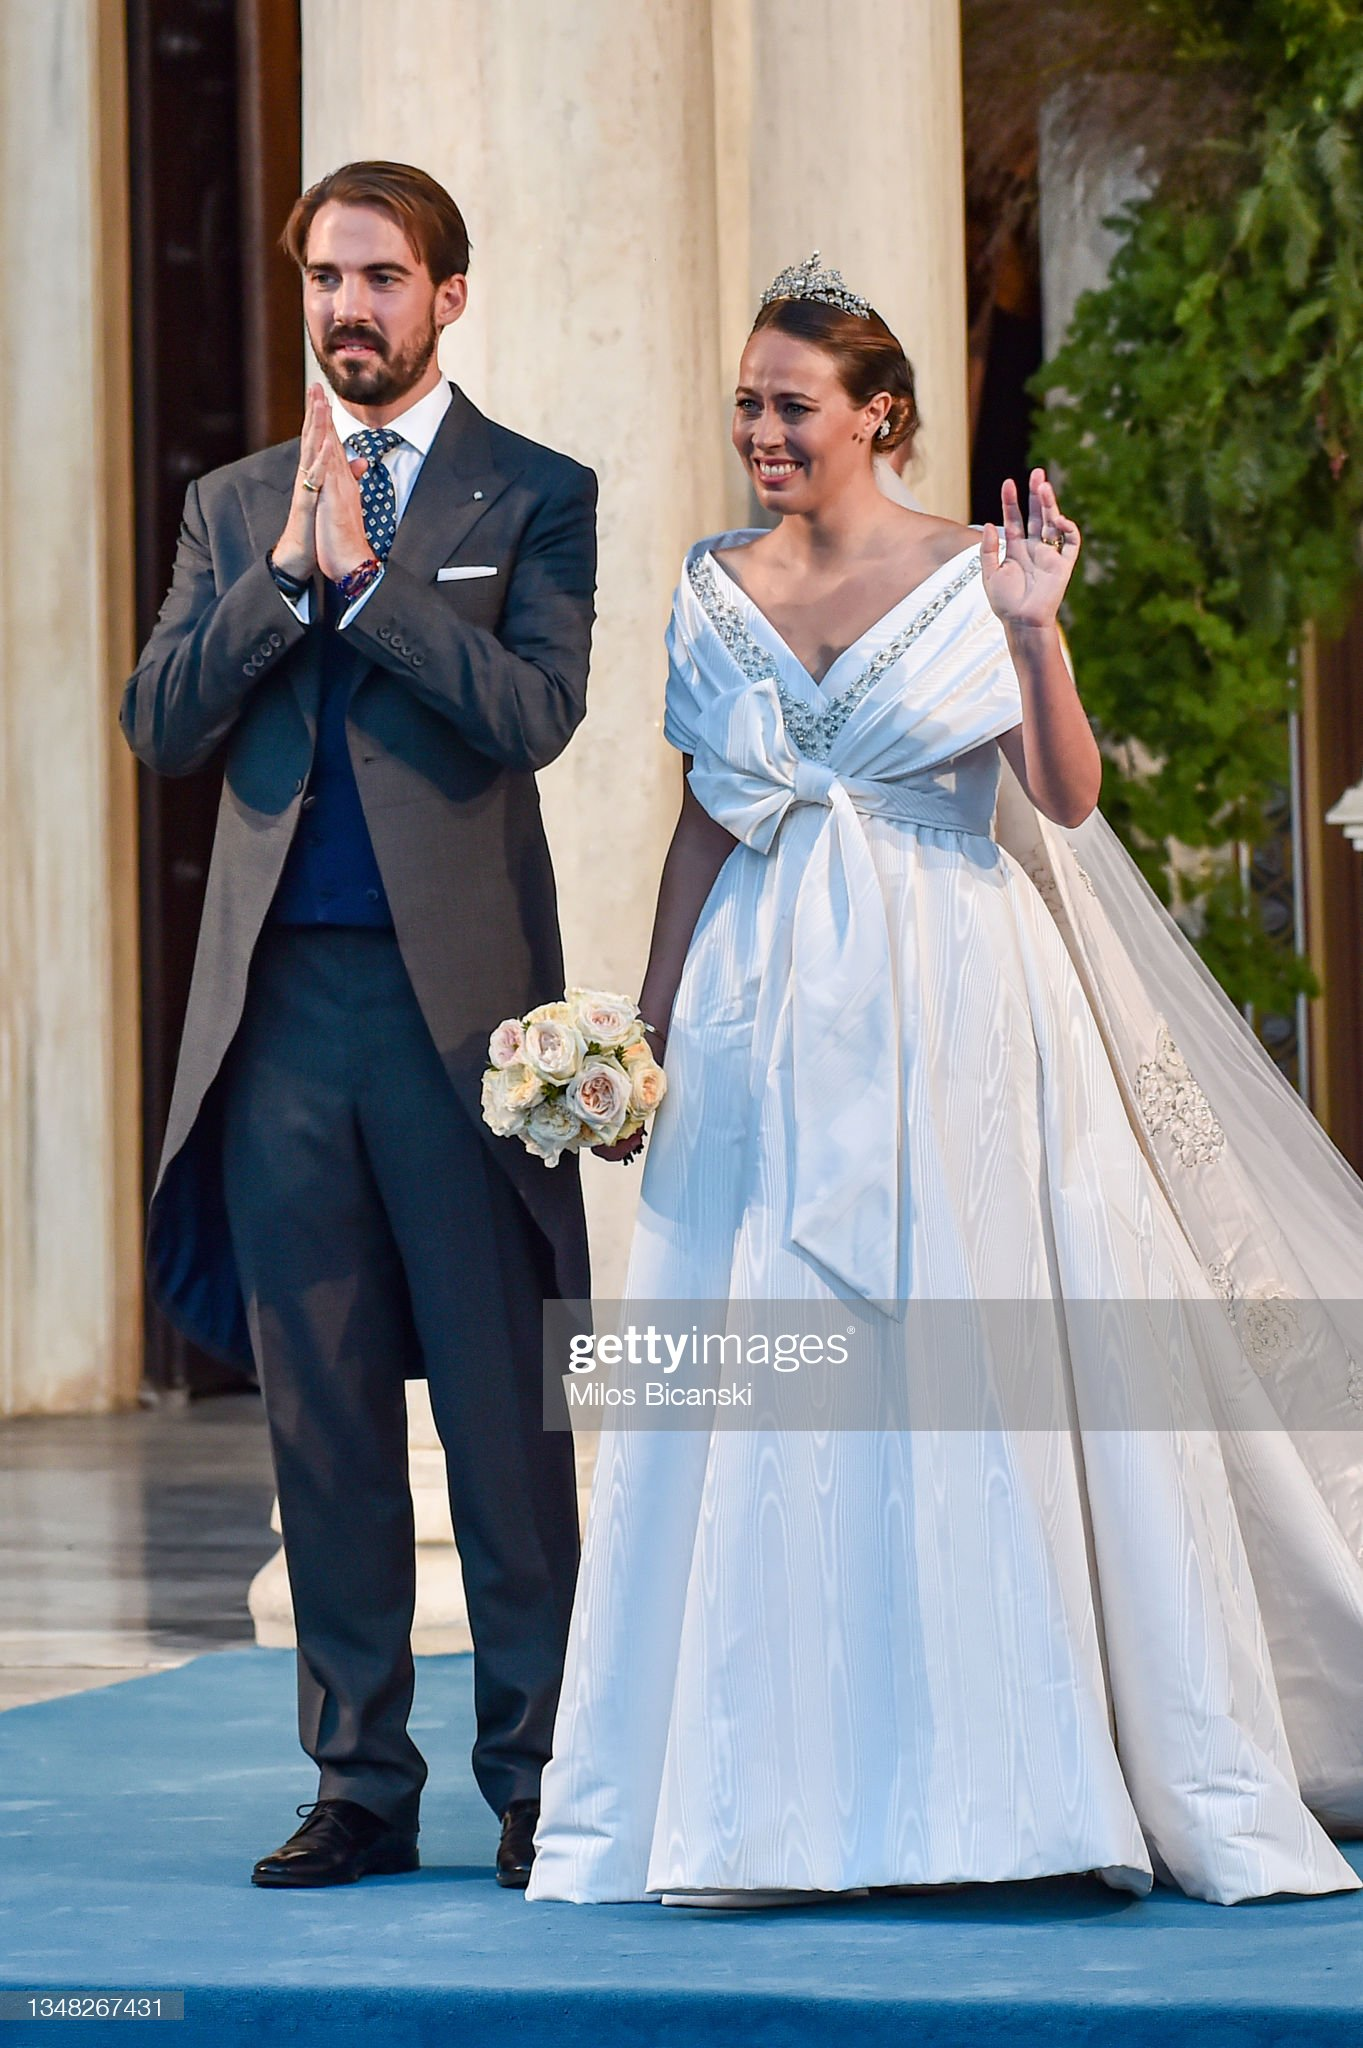 Philippos Of Greece Wedding In Athens : News Photo